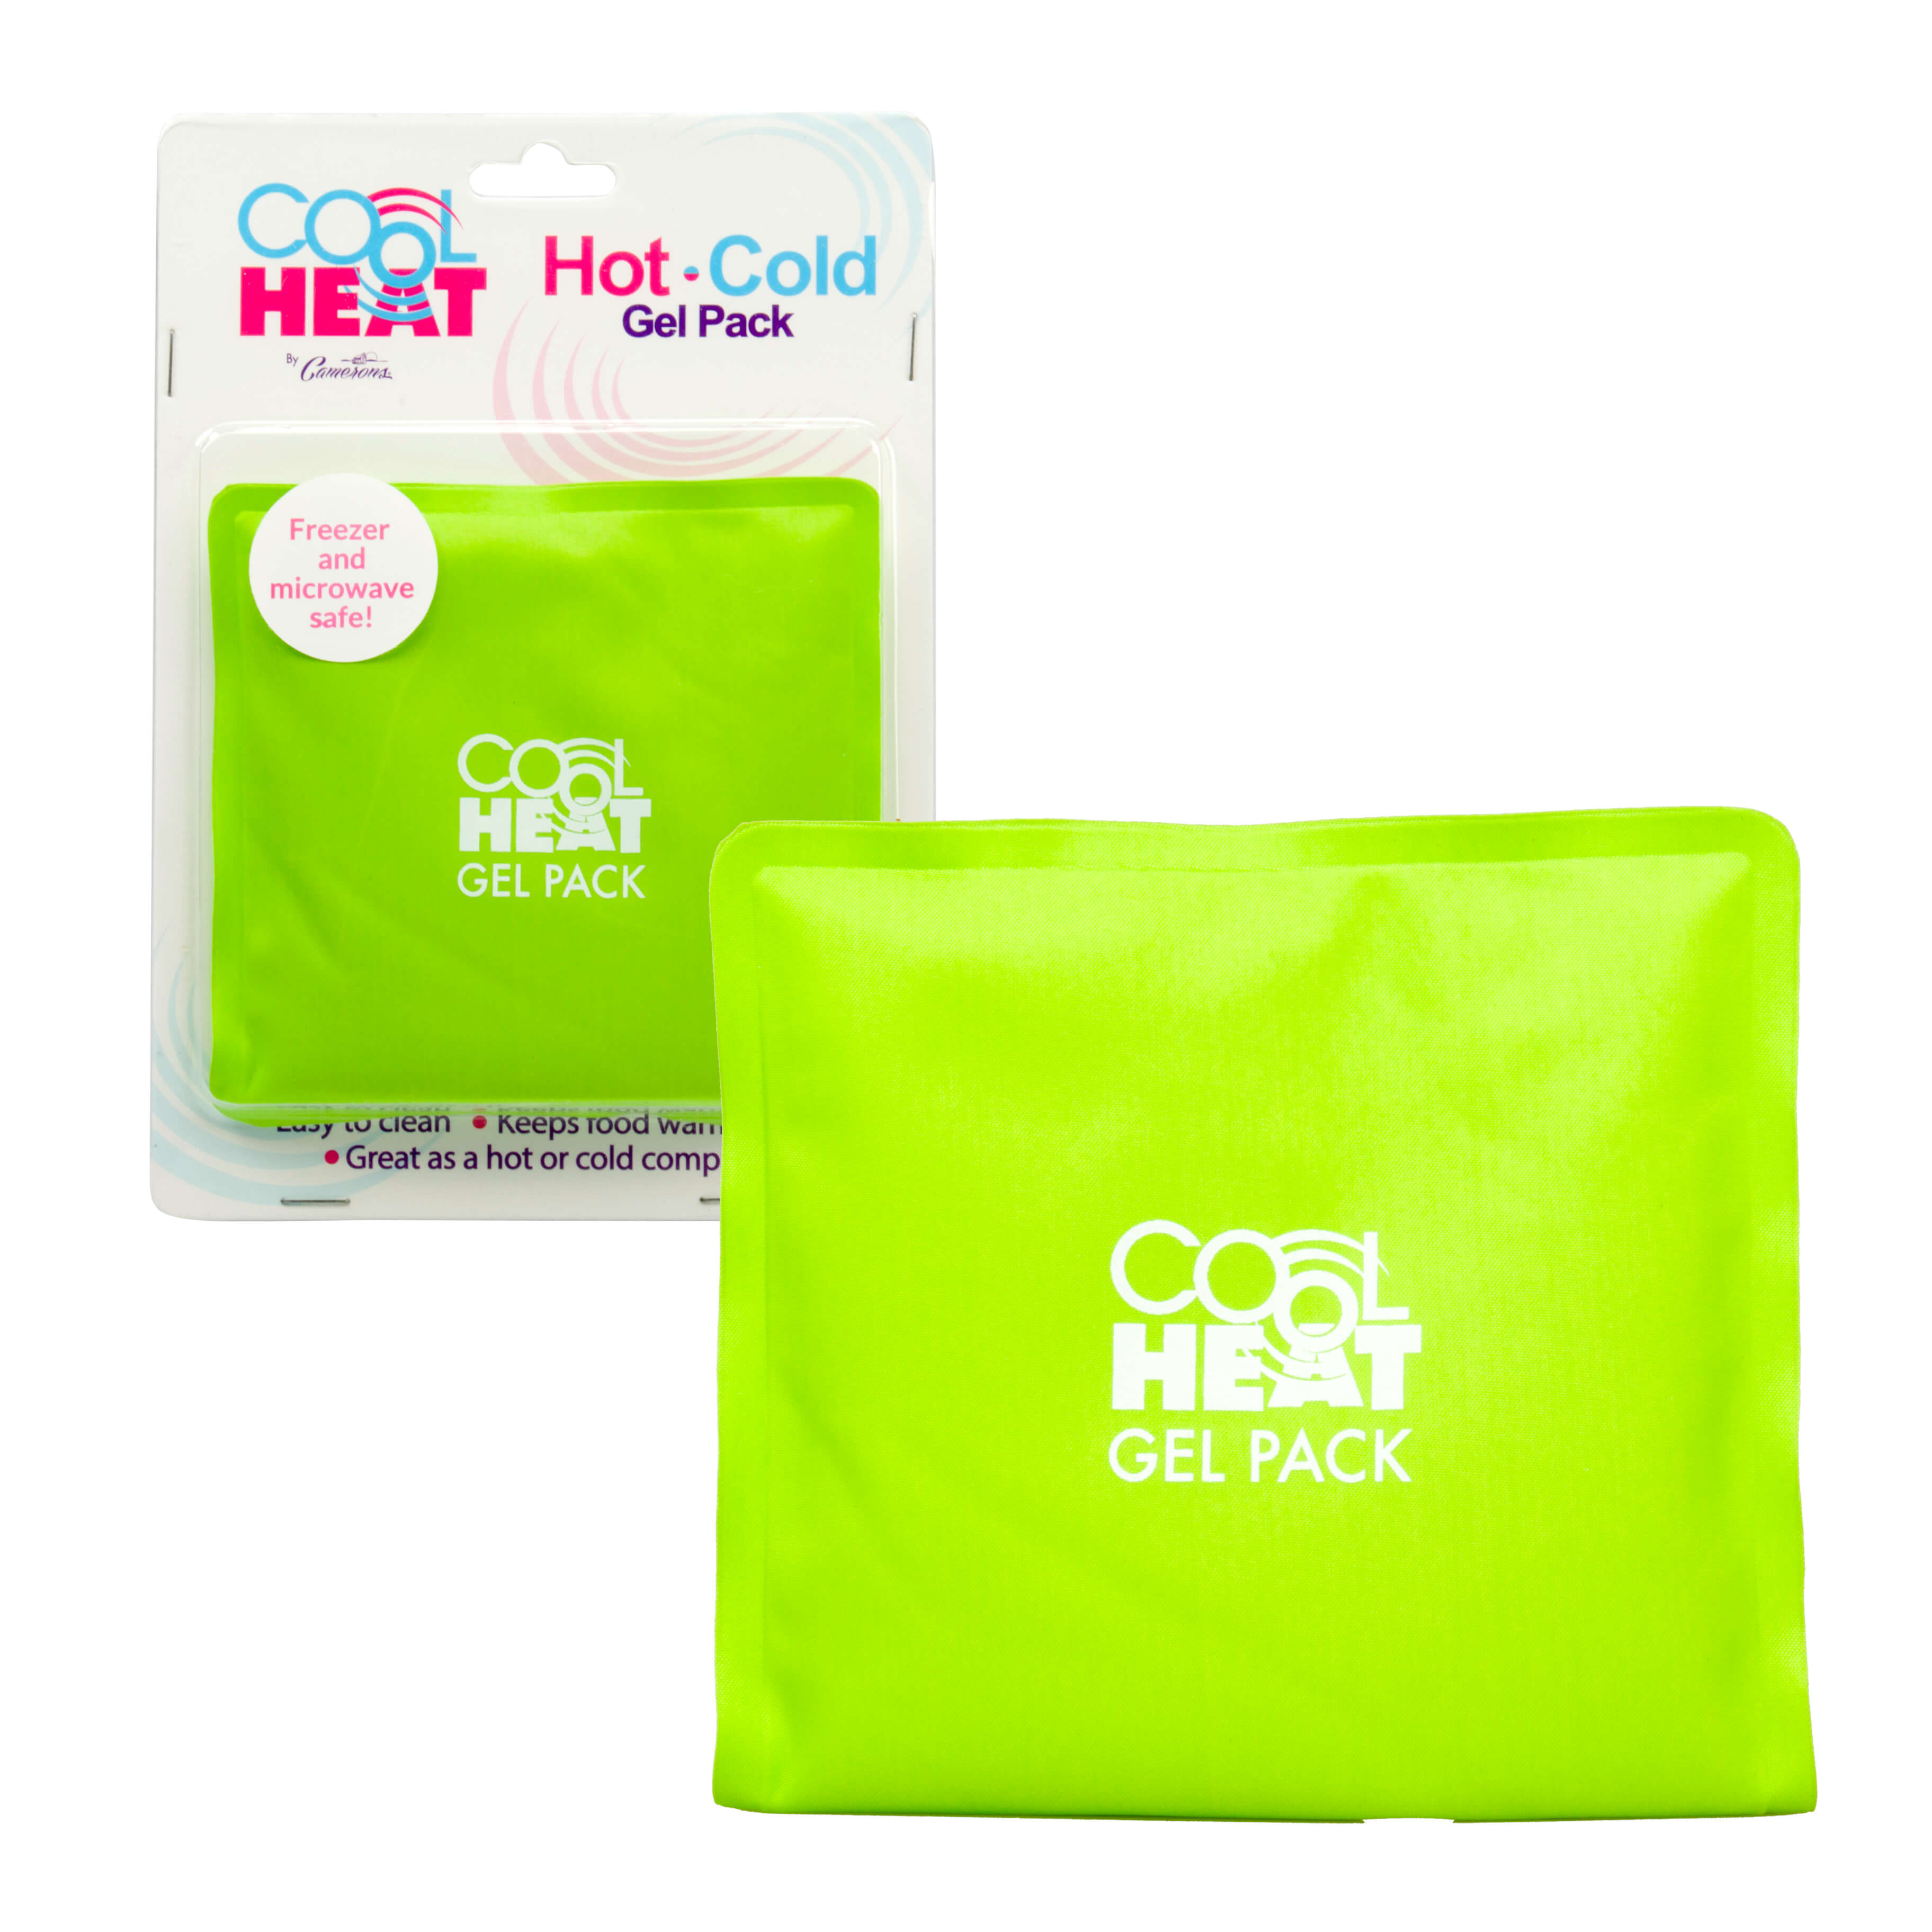 Mini Hot Amp Cold Gel Pack From Camerons Products